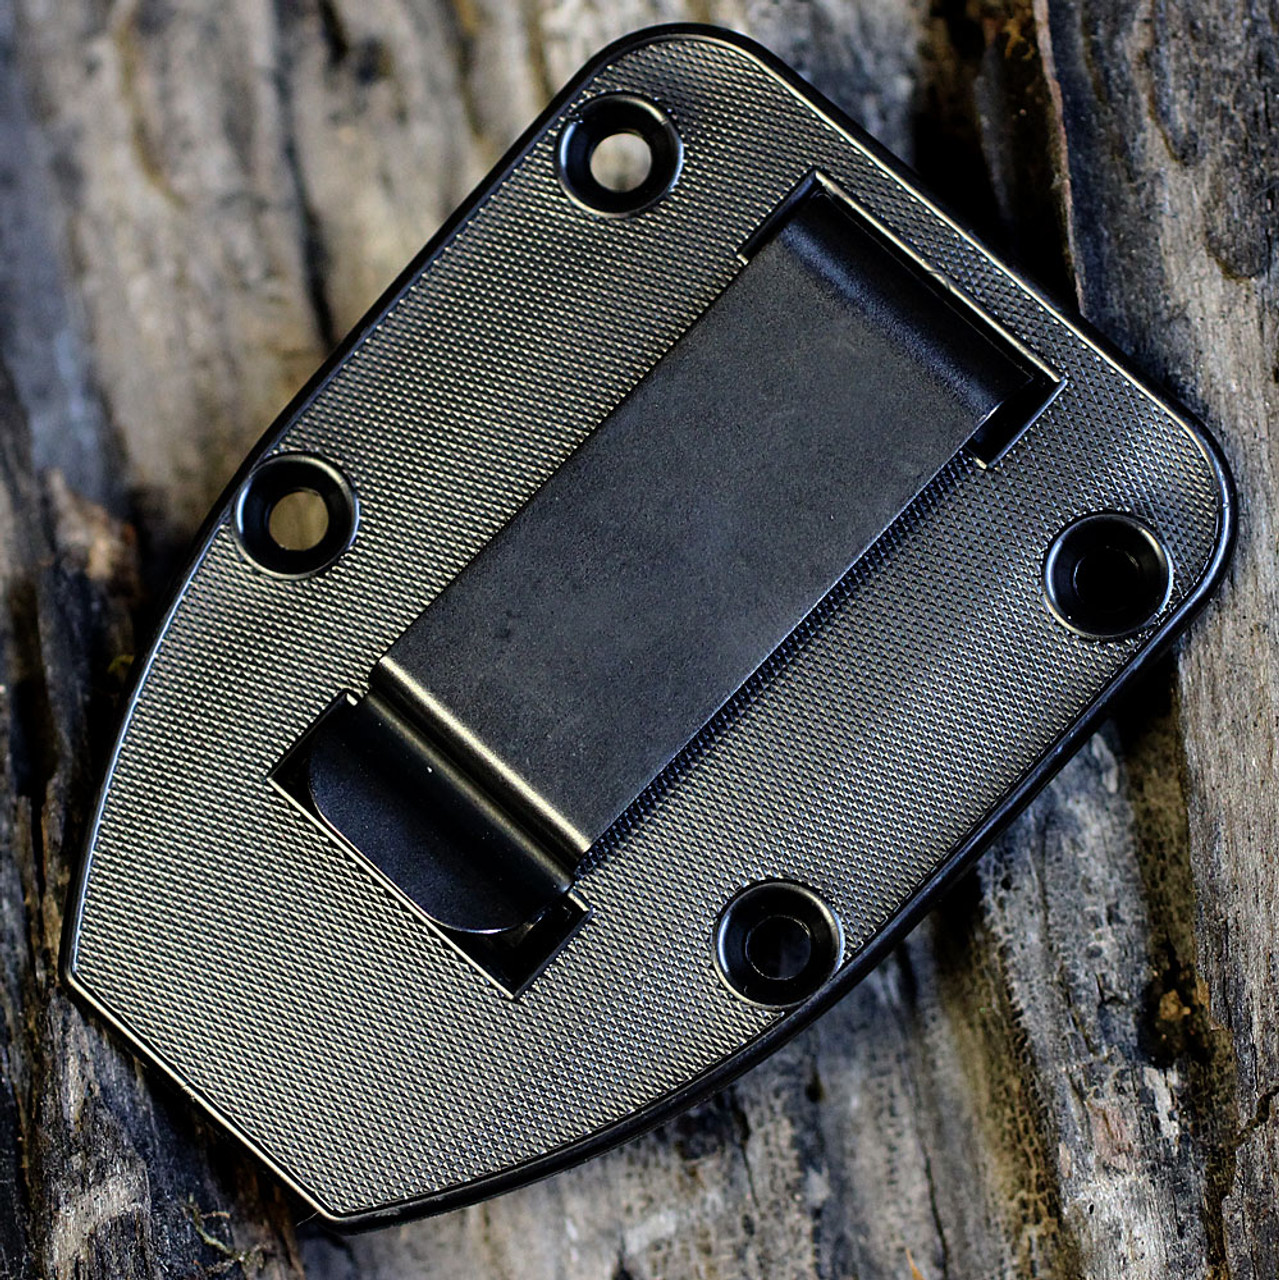 ESEE Knives, 4S-CP-TG-B, Tactical Gray Partially Serrated Edge Blade Sharpened Top, G-10 Handle, Black Molded Sheath and Clip Plate